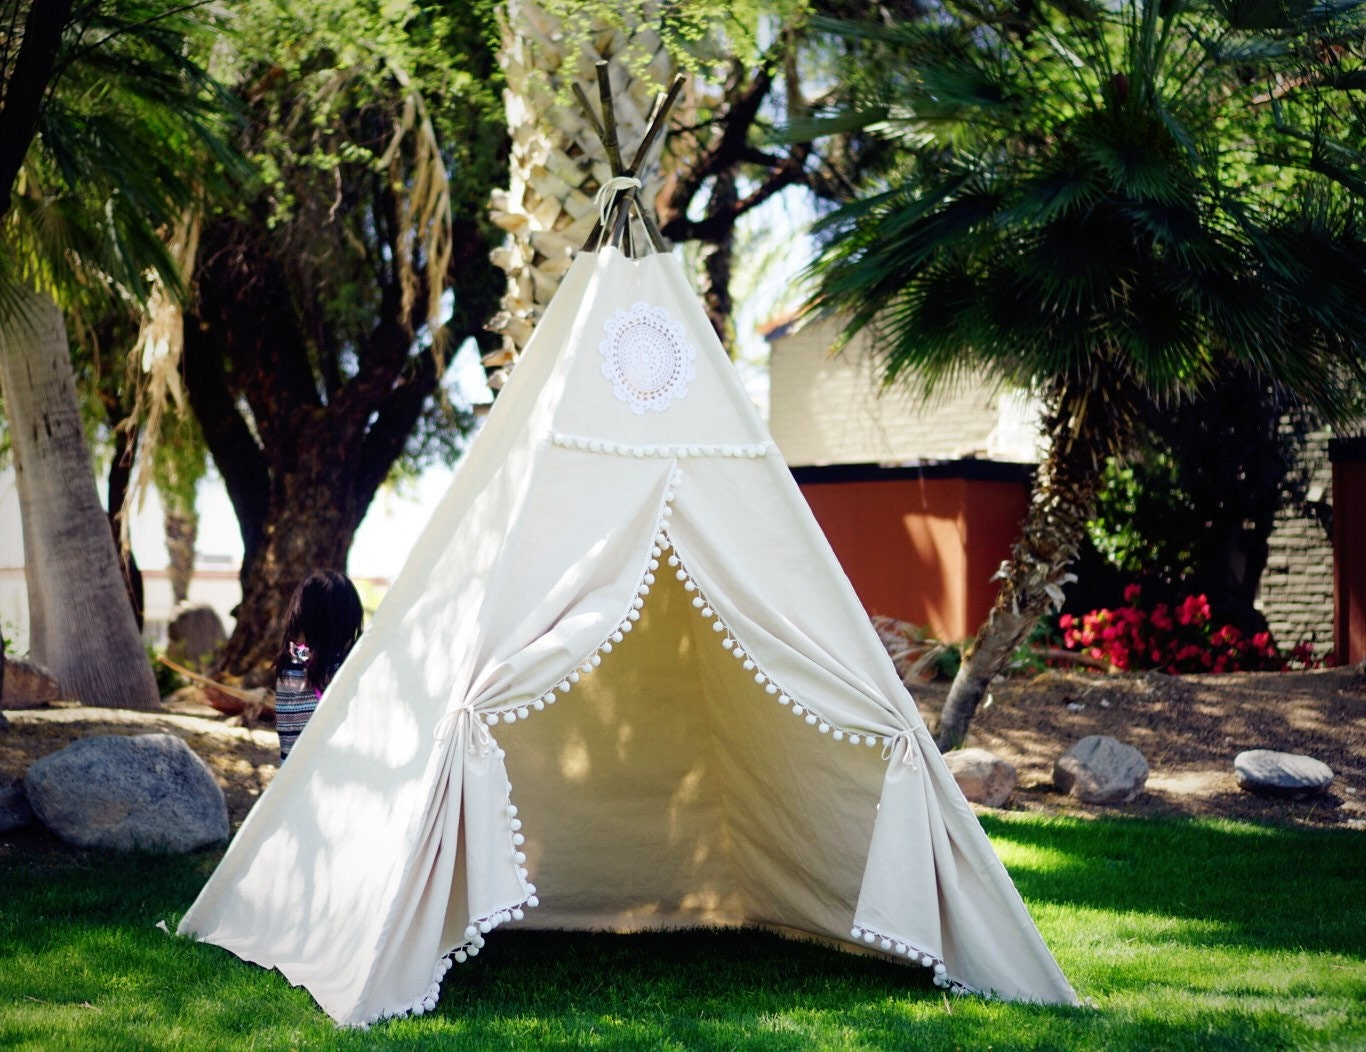 XL Vintage teepee beach teepee 8ft kids Teepee large tipi Play tent wigwam or playhouse with canvas and Overlapping front doors & XL Vintage teepee beach teepee 8ft kids Teepee large tipi Play ...